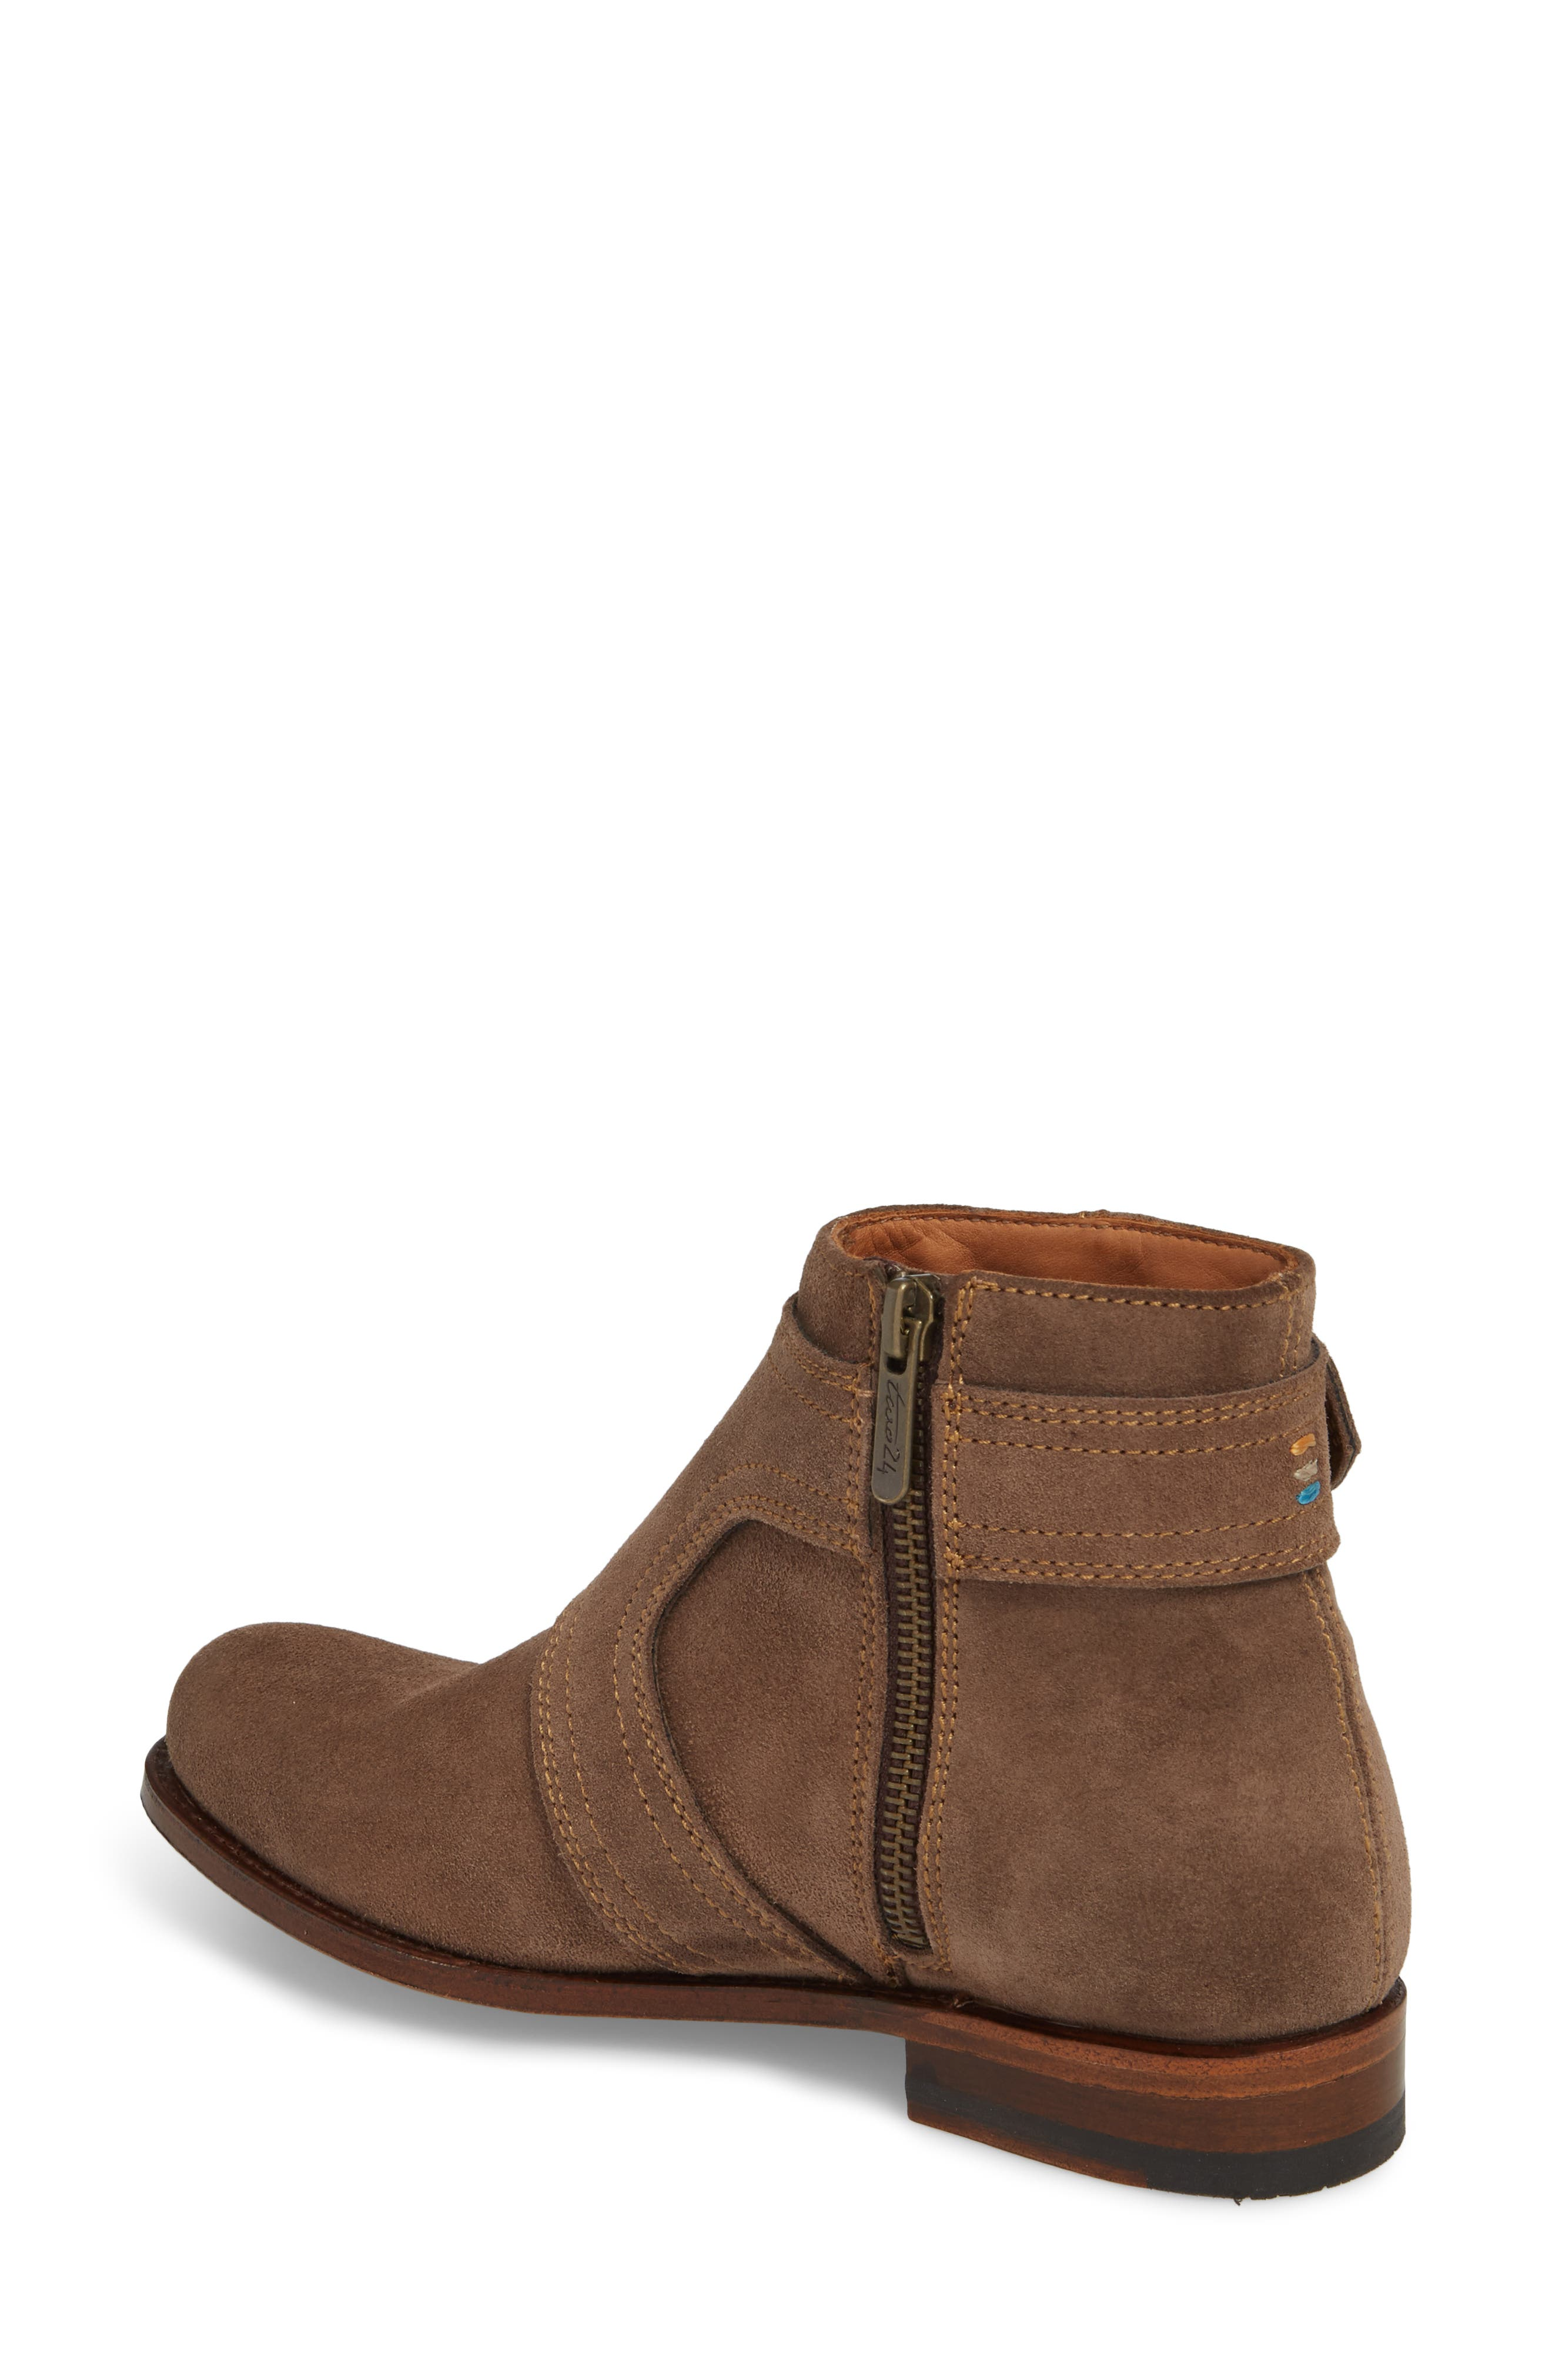 Two24 by Ariat Paloma Bootie,                             Alternate thumbnail 2, color,